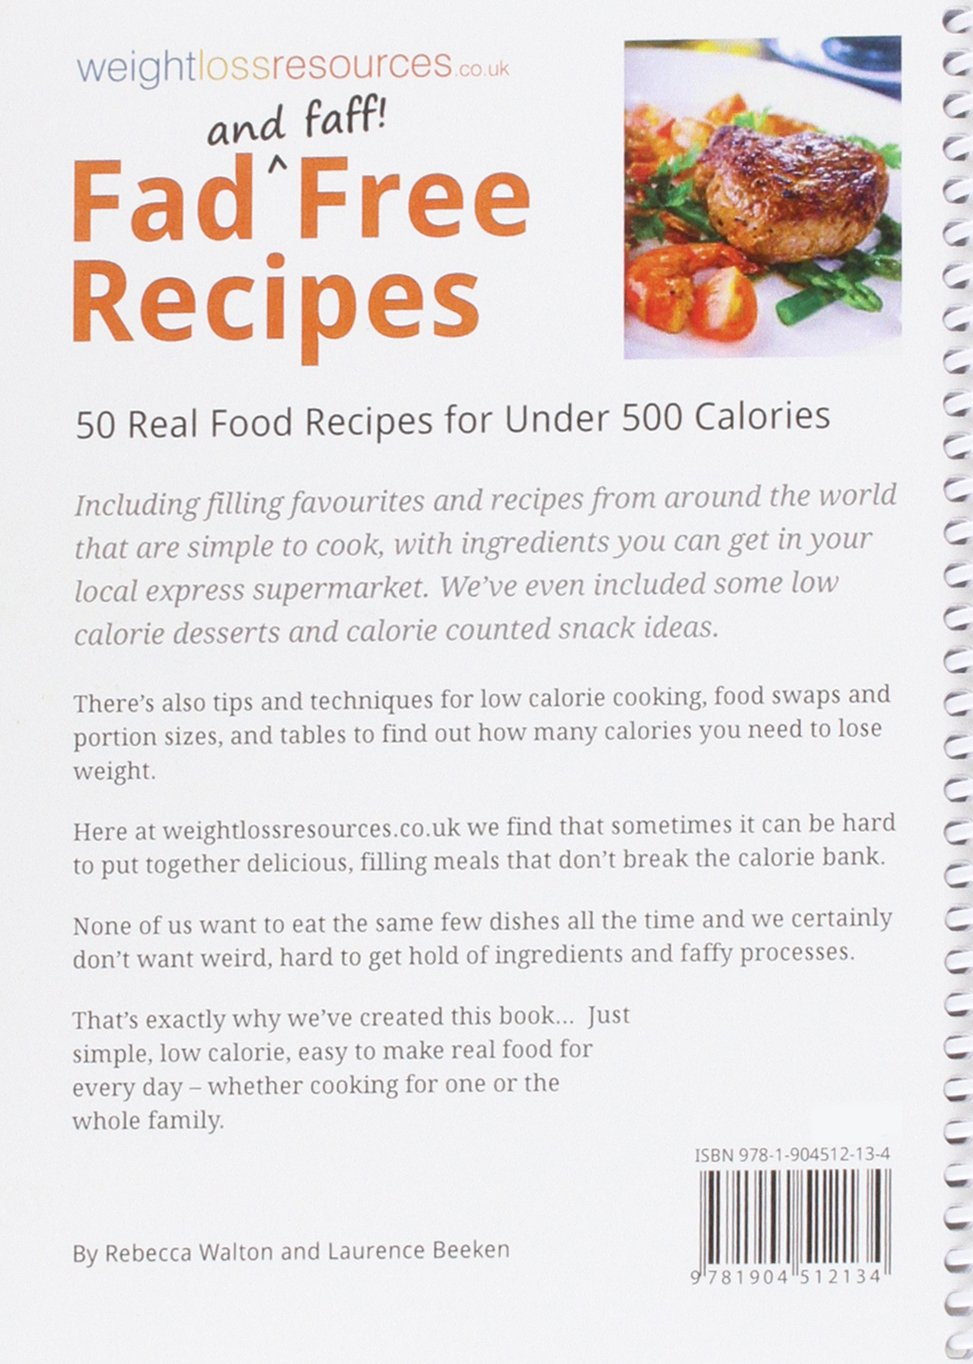 Fad free recipes 50 real food recipes for under 500 calories fad free recipes 50 real food recipes for under 500 calories amazon rebecca walton laurence beeken 9781904512134 books forumfinder Gallery